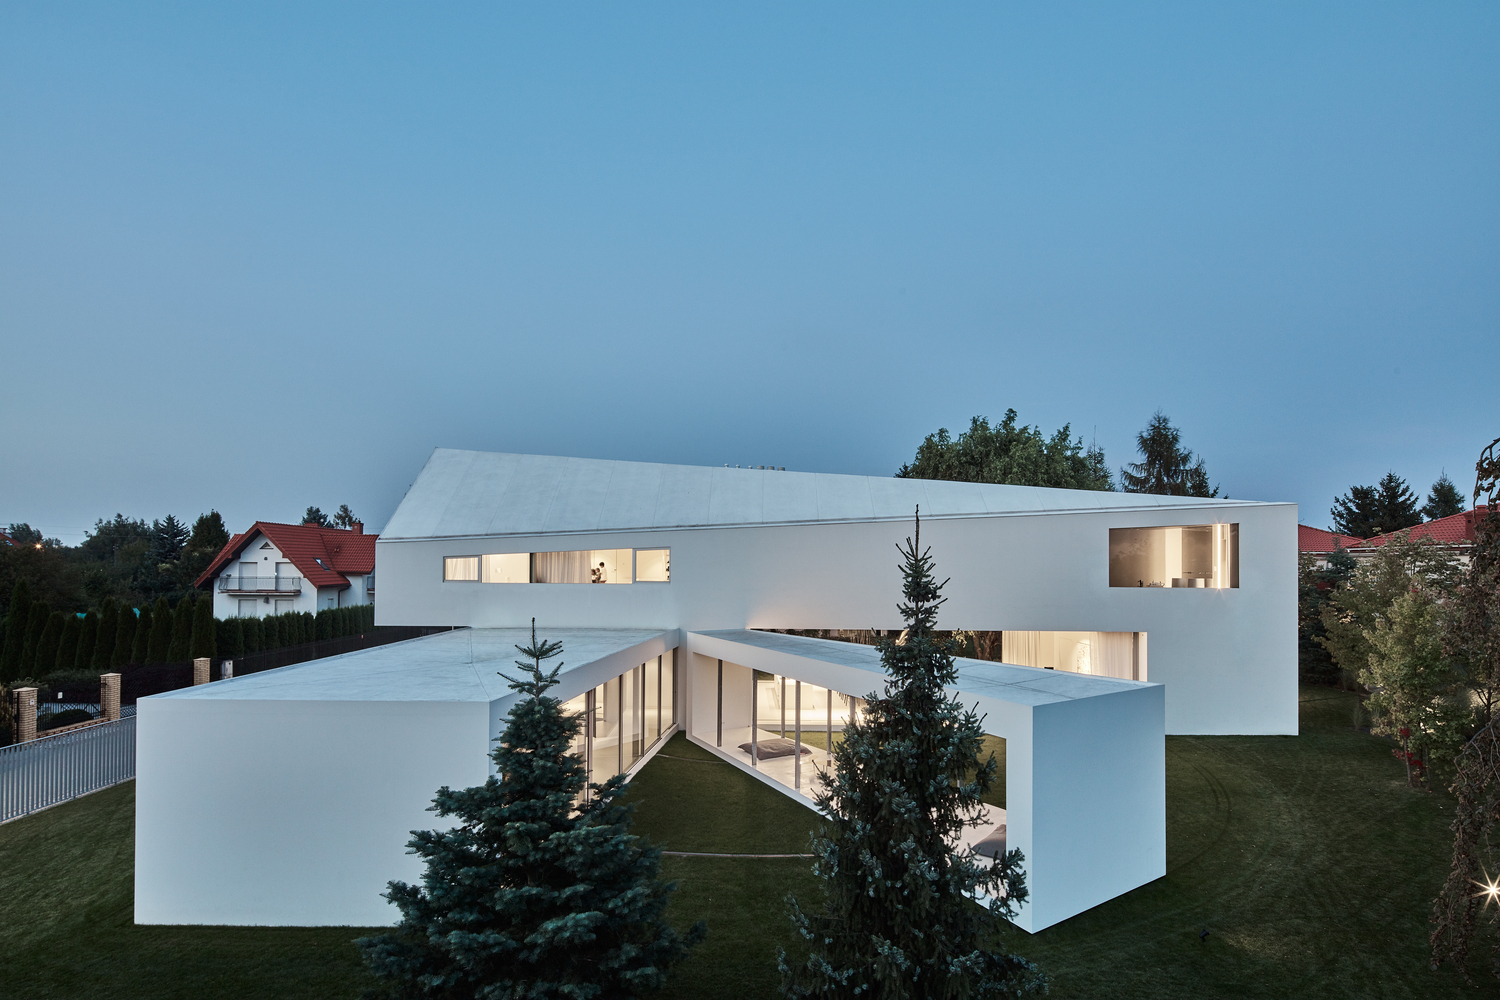 On the outside, the entire structure is white and has a very clean and minimalistic aesthetic